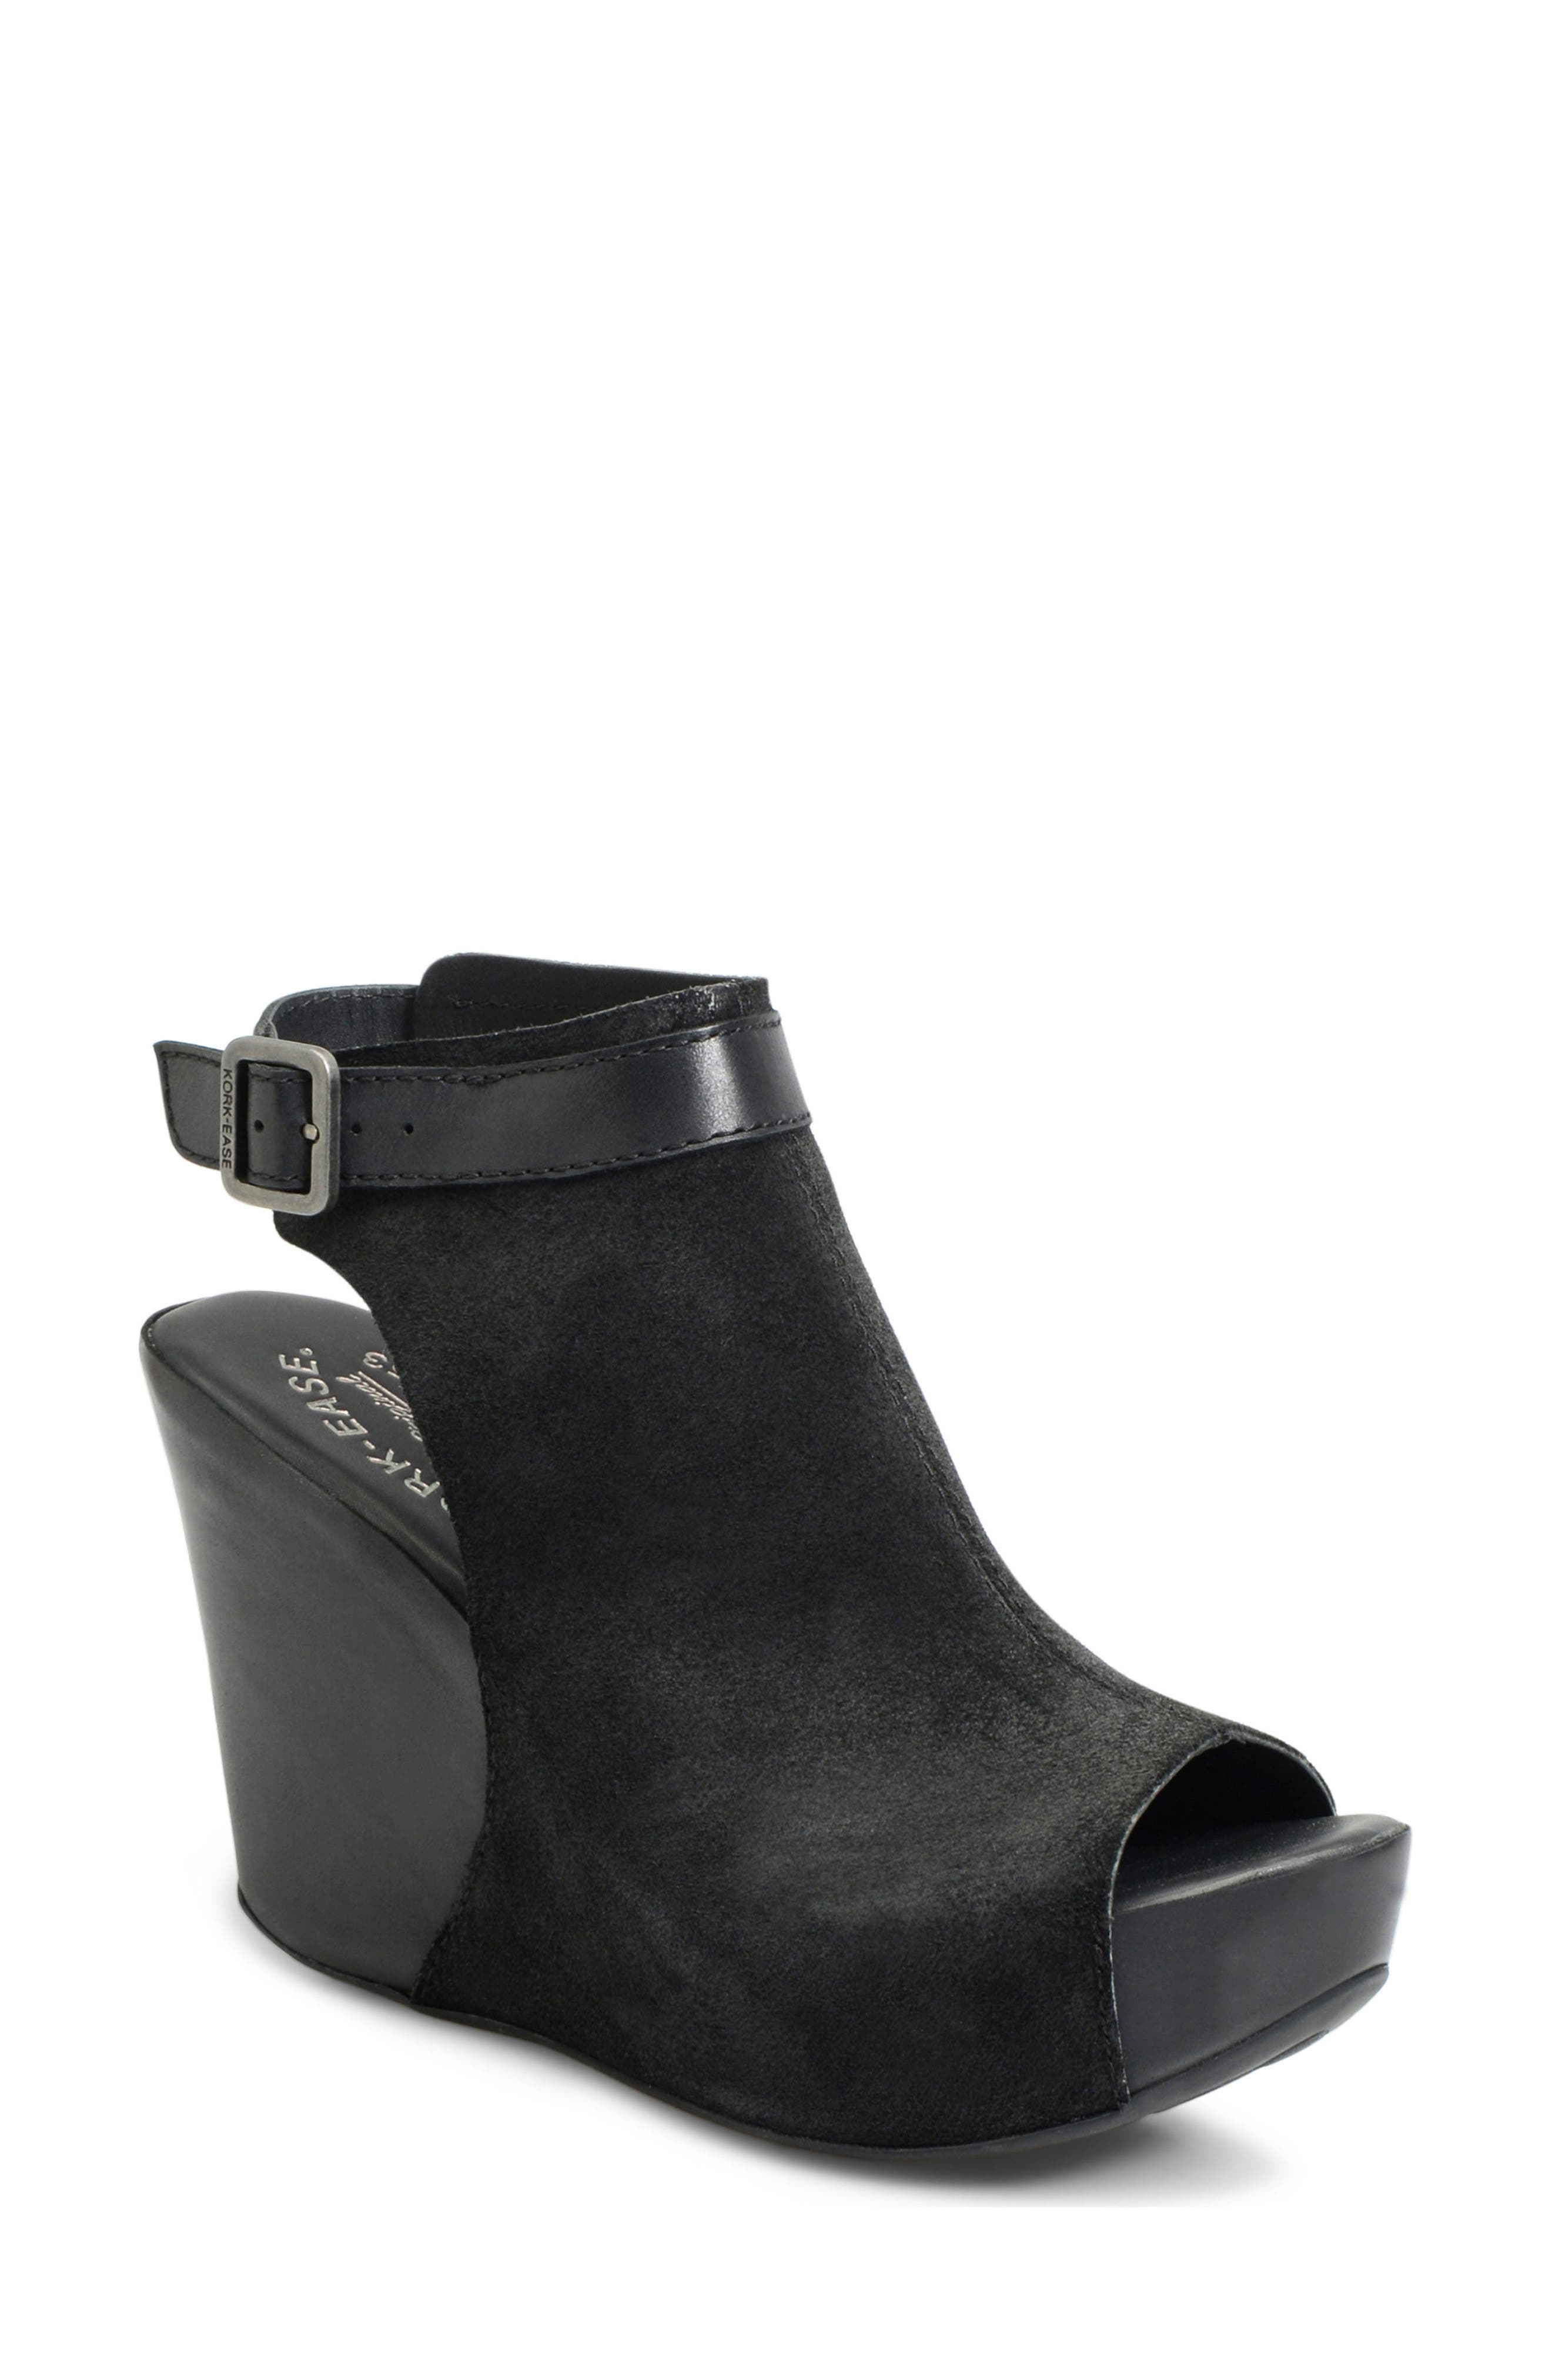 'Berit' Wedge Sandal,                         Main,                         color, Black Suede